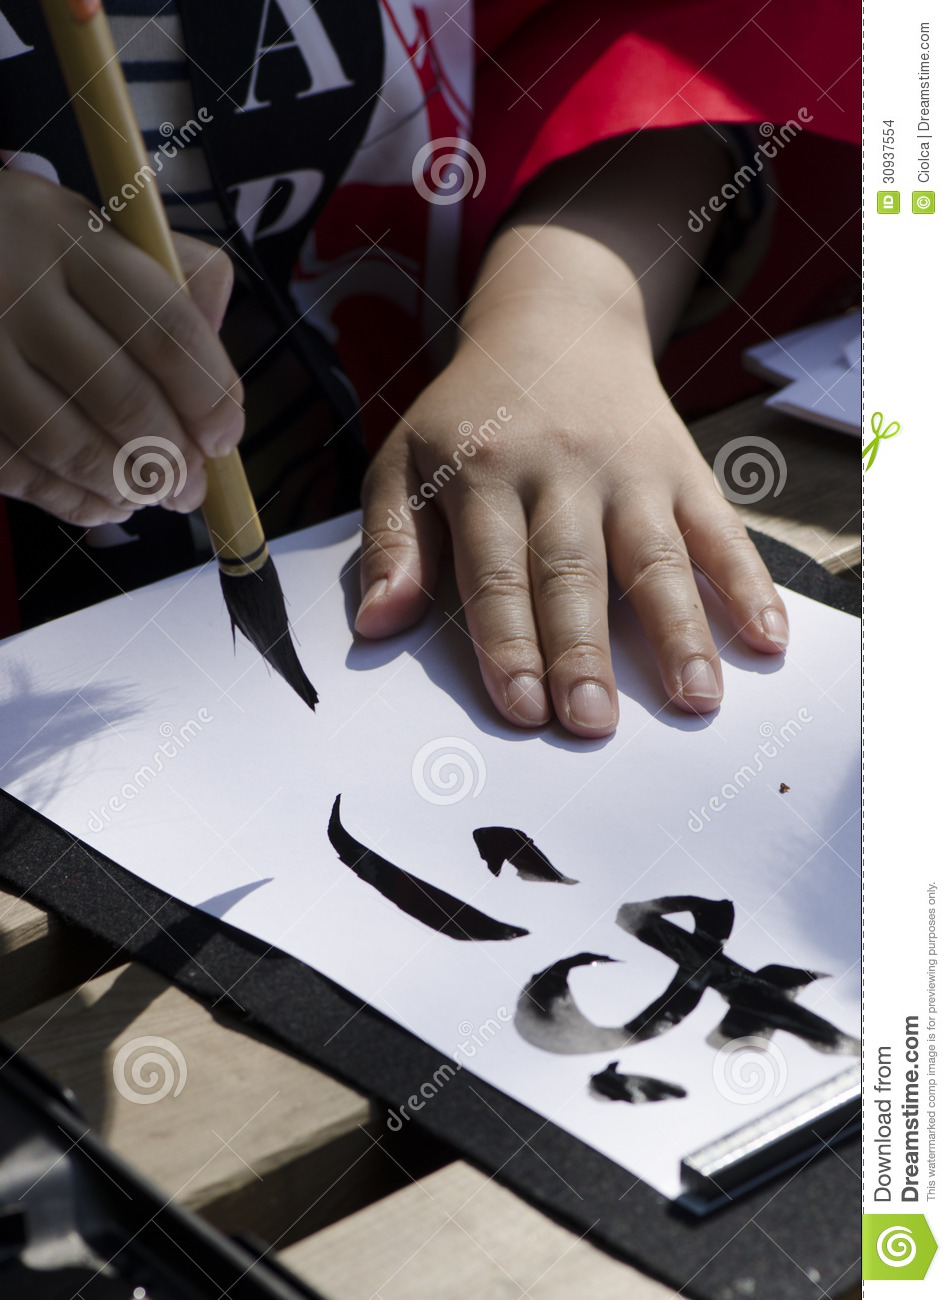 Calligraphie japonaise photo stock image du traditionnel